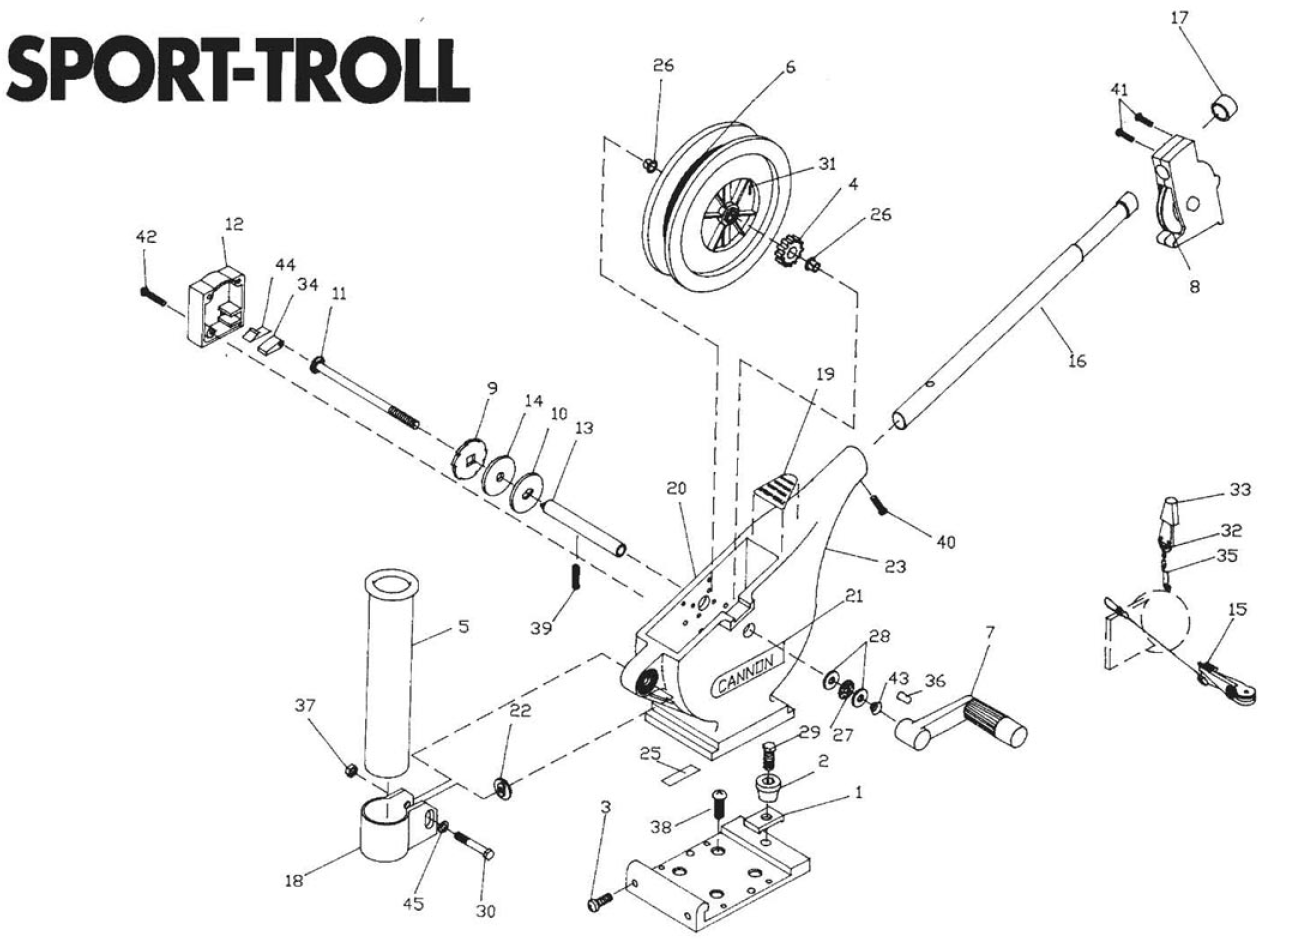 Order Cannon Sport Troll Parts Online At Fish307